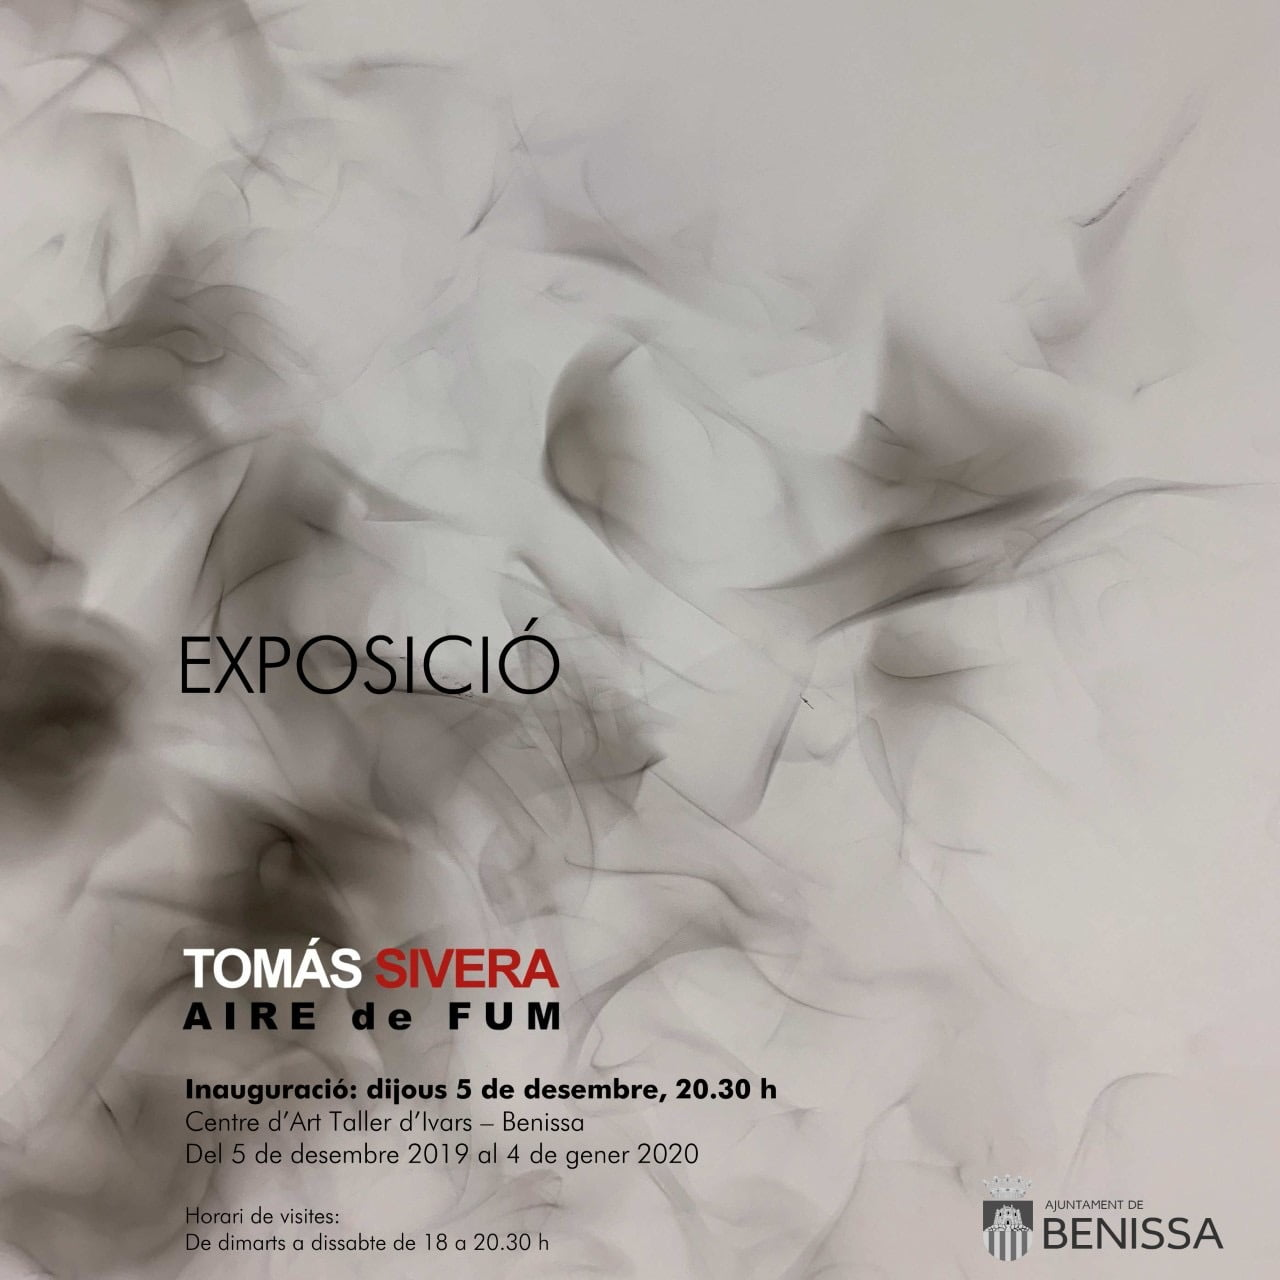 Invitation to the exhibition of Tomás Sivera in Benissa